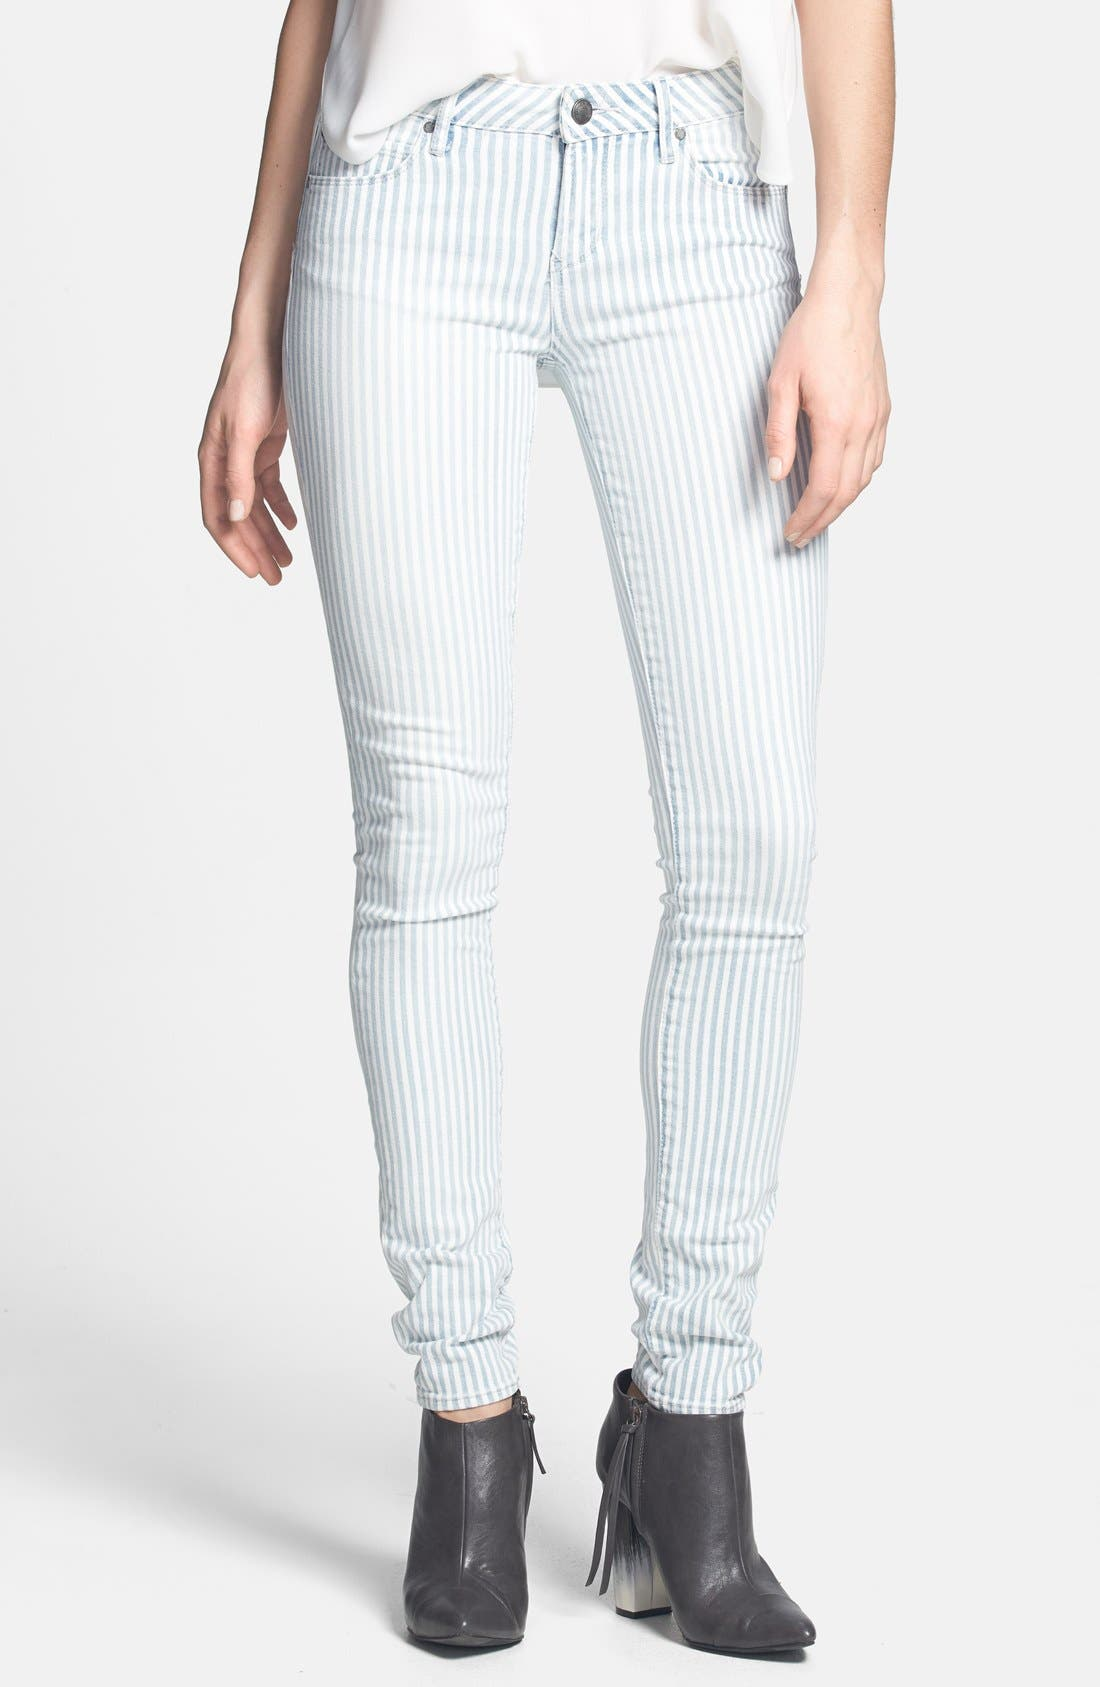 Alternate Image 1 Selected - Articles of Society 'Mya' Railroad Stripe Skinny Jeans (Juniors)